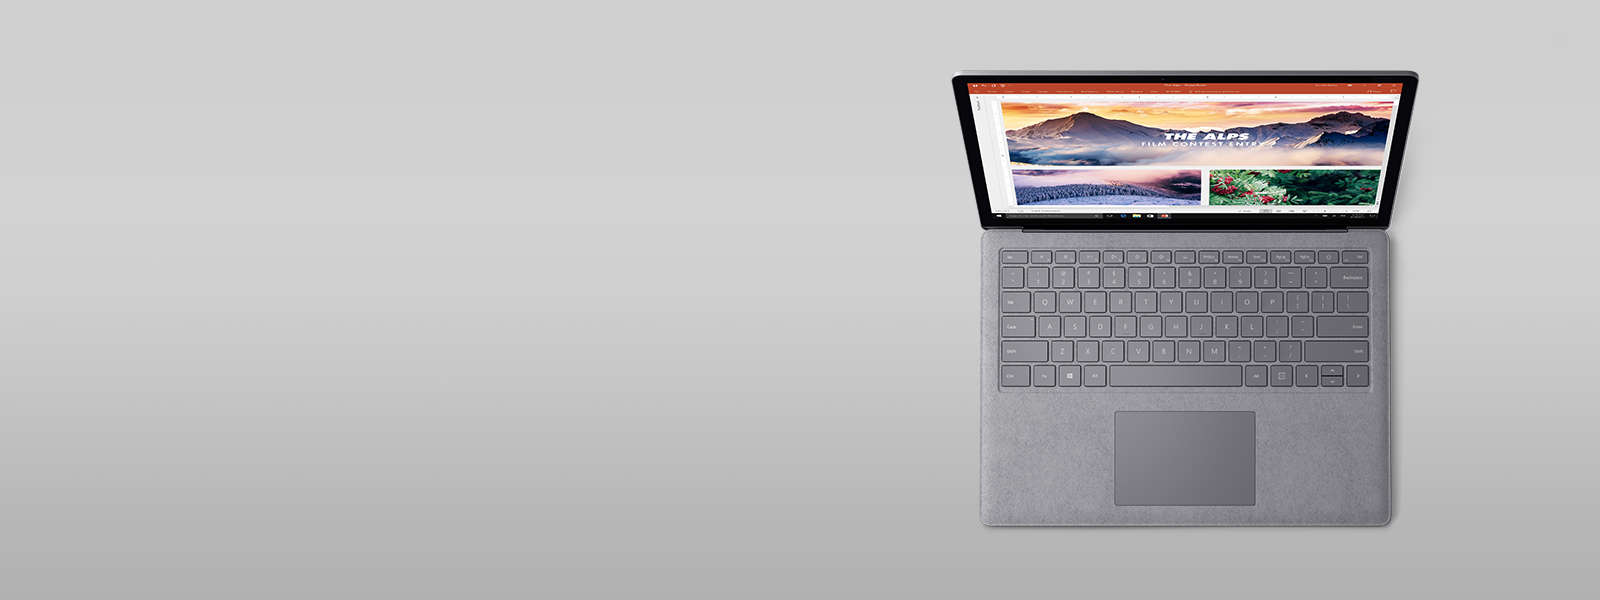 Perfect surfaces product display - Surface Laptop Running Powerpoint